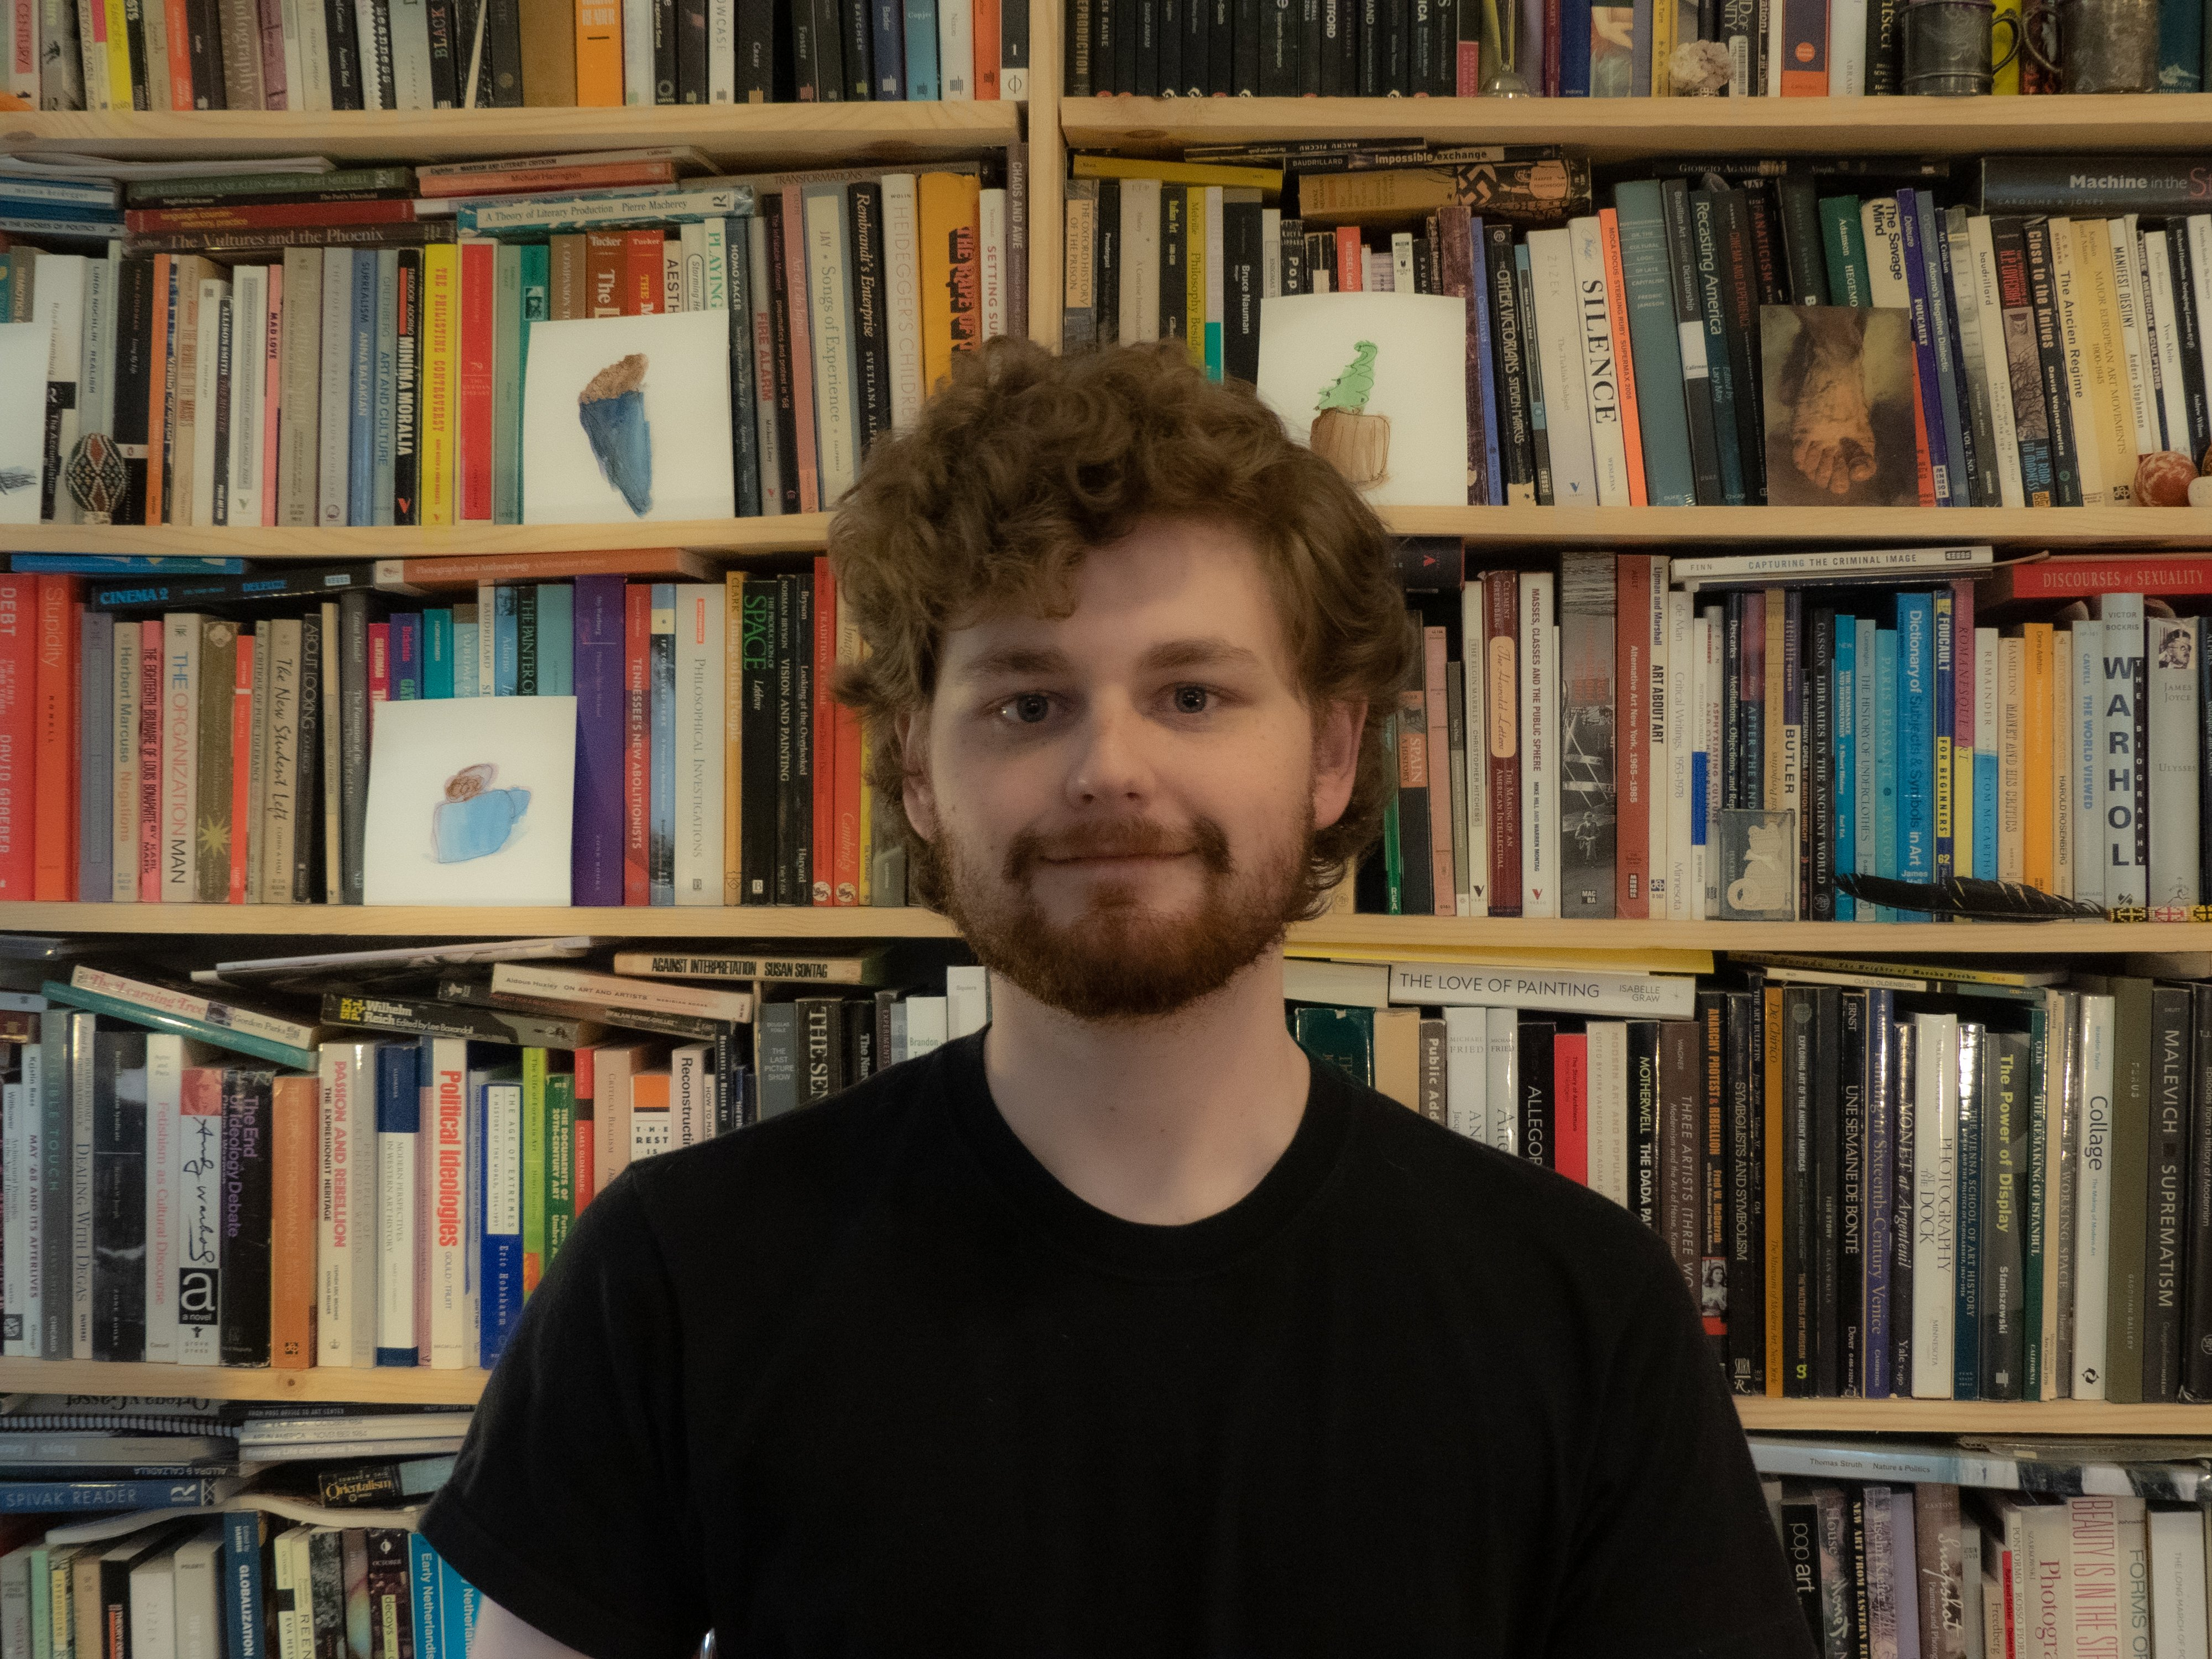 A photo of Colo in front of full bookshelves with full head of hair and beard wearing a black tee